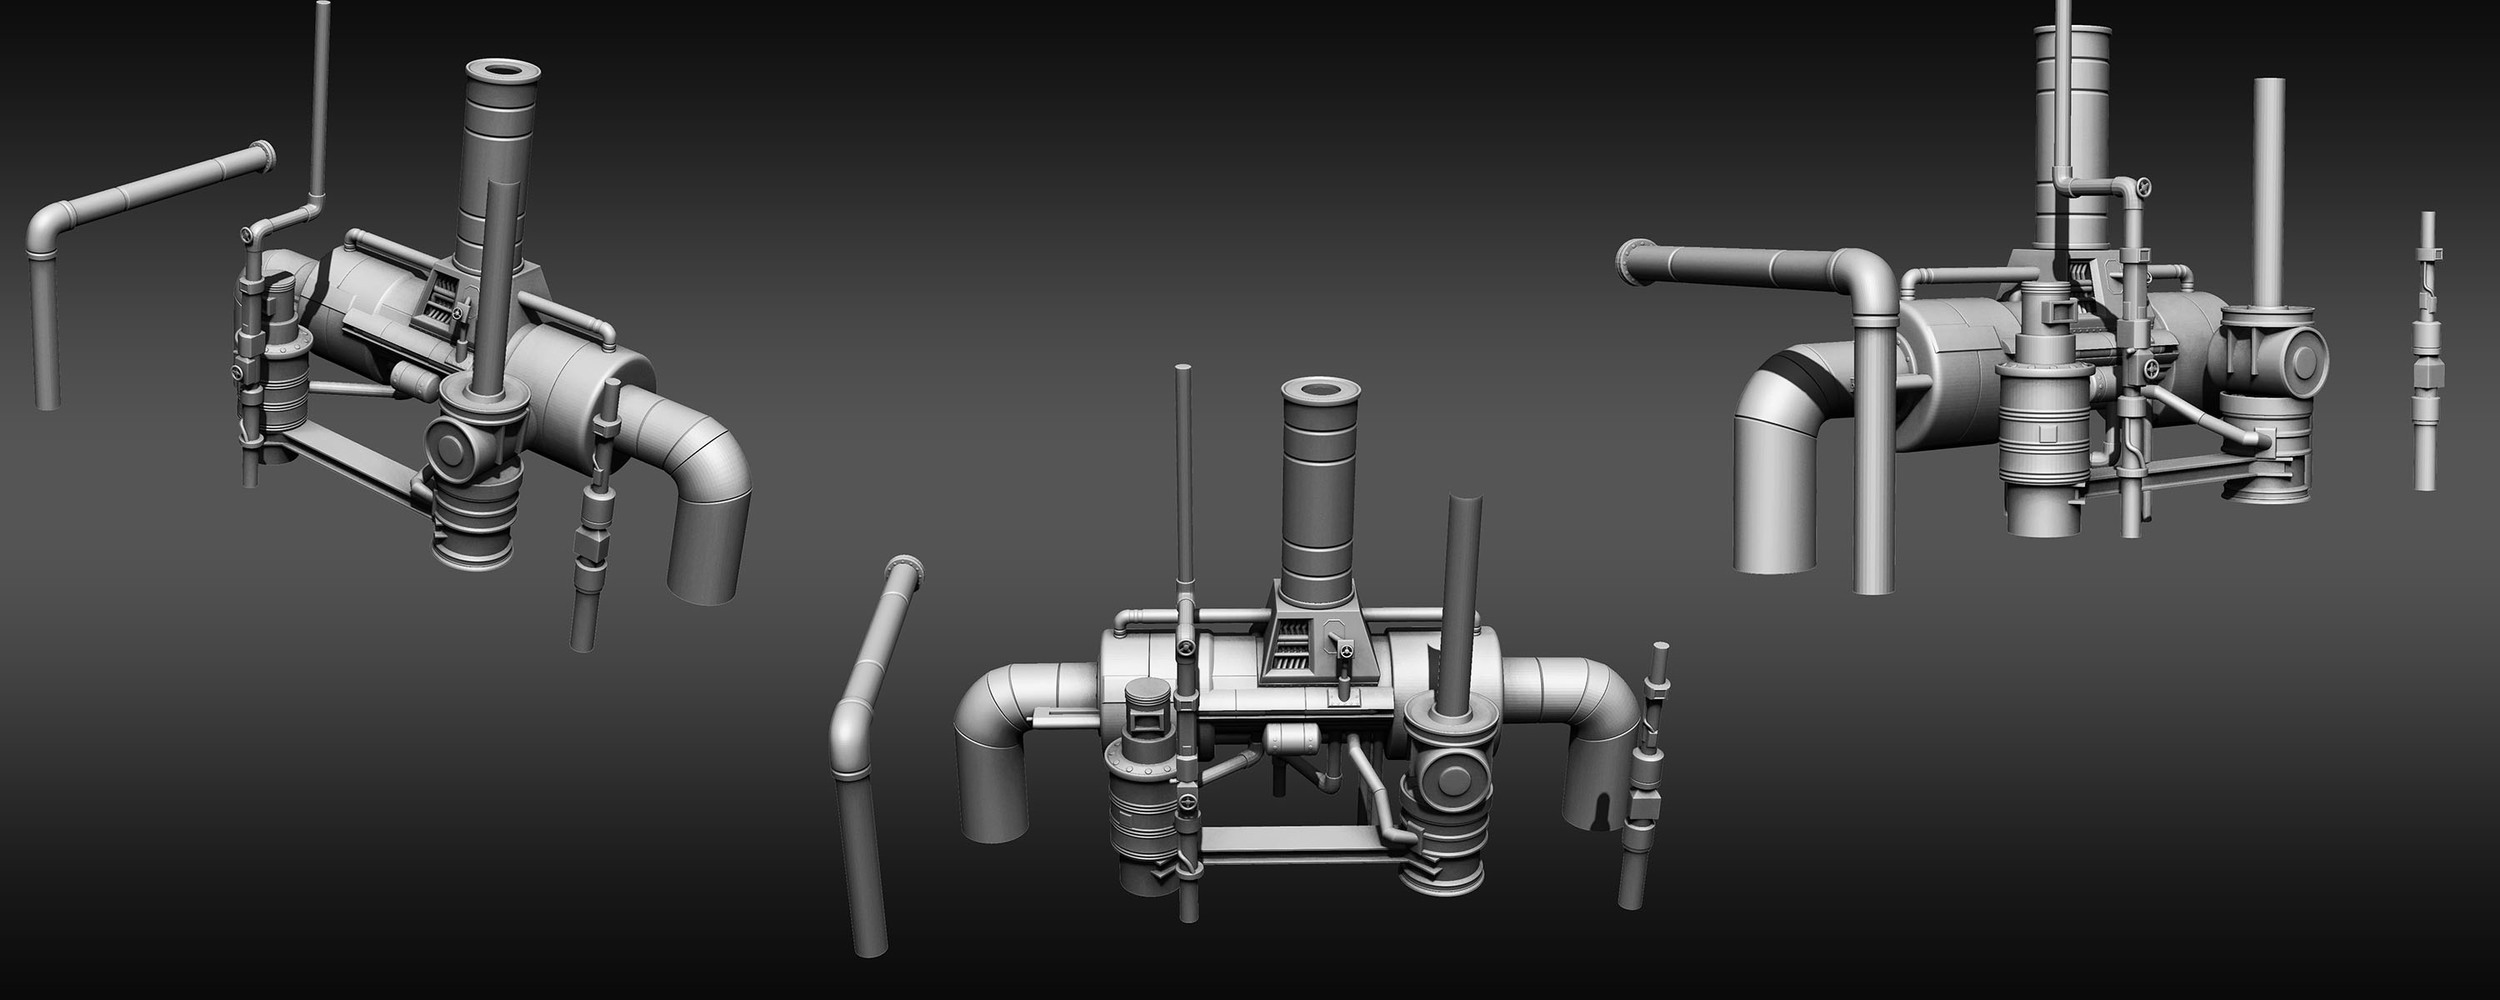 PipeSet_Highpoly.jpg